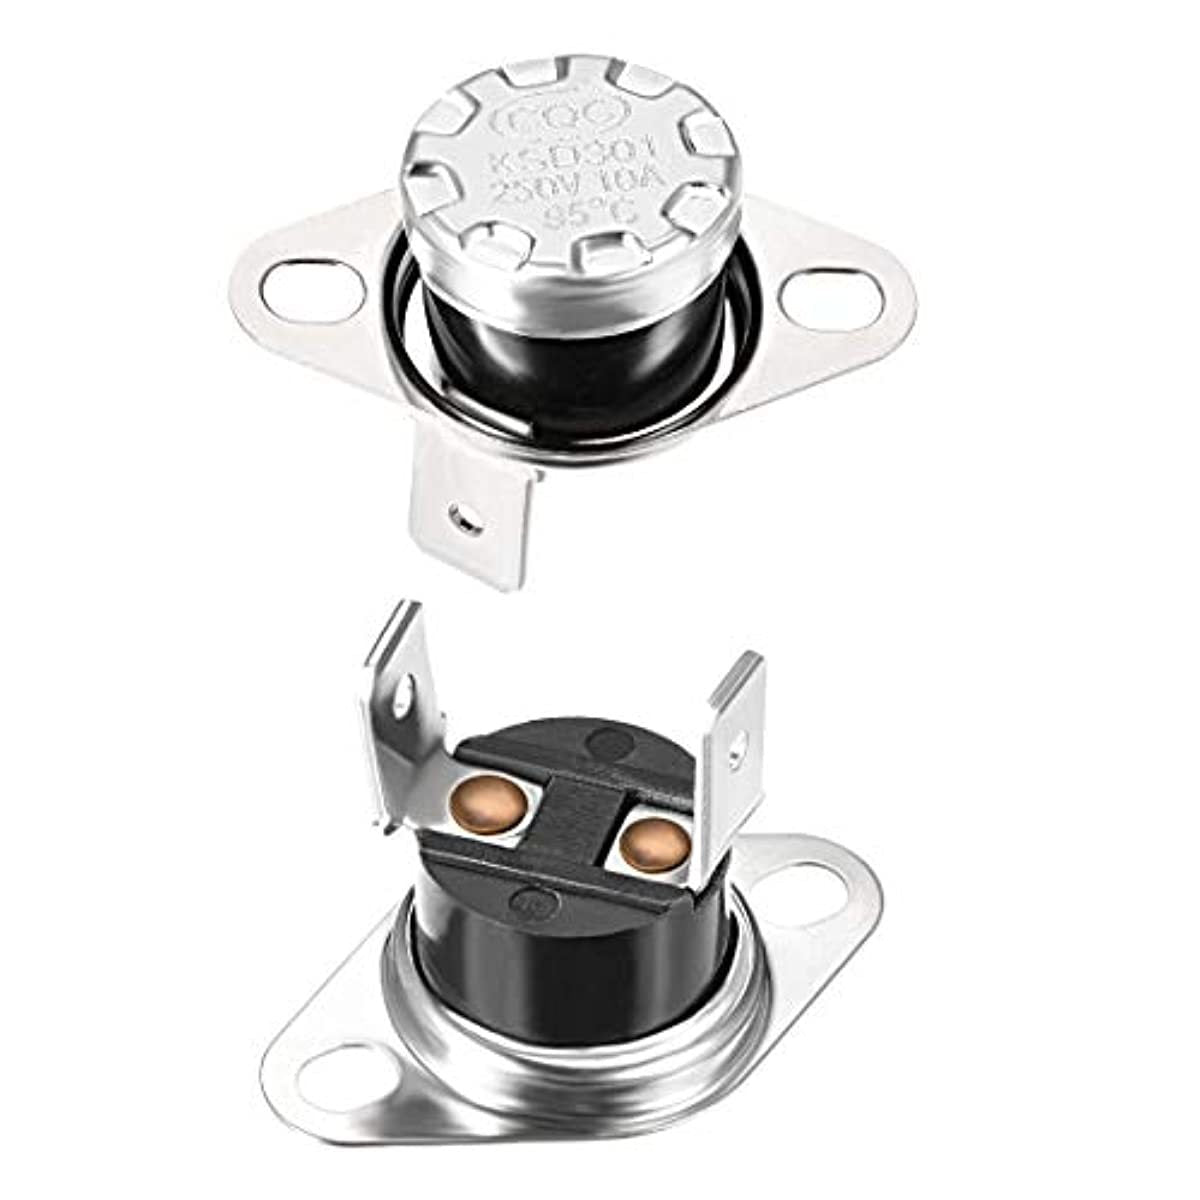 uxcell KSD301 Thermostat 95°C/203°F 10A Normally Closed N.C Adjust Snap Disc Temperature Switch for Microwave,Oven,Coffee Maker,Smoker 2pcs